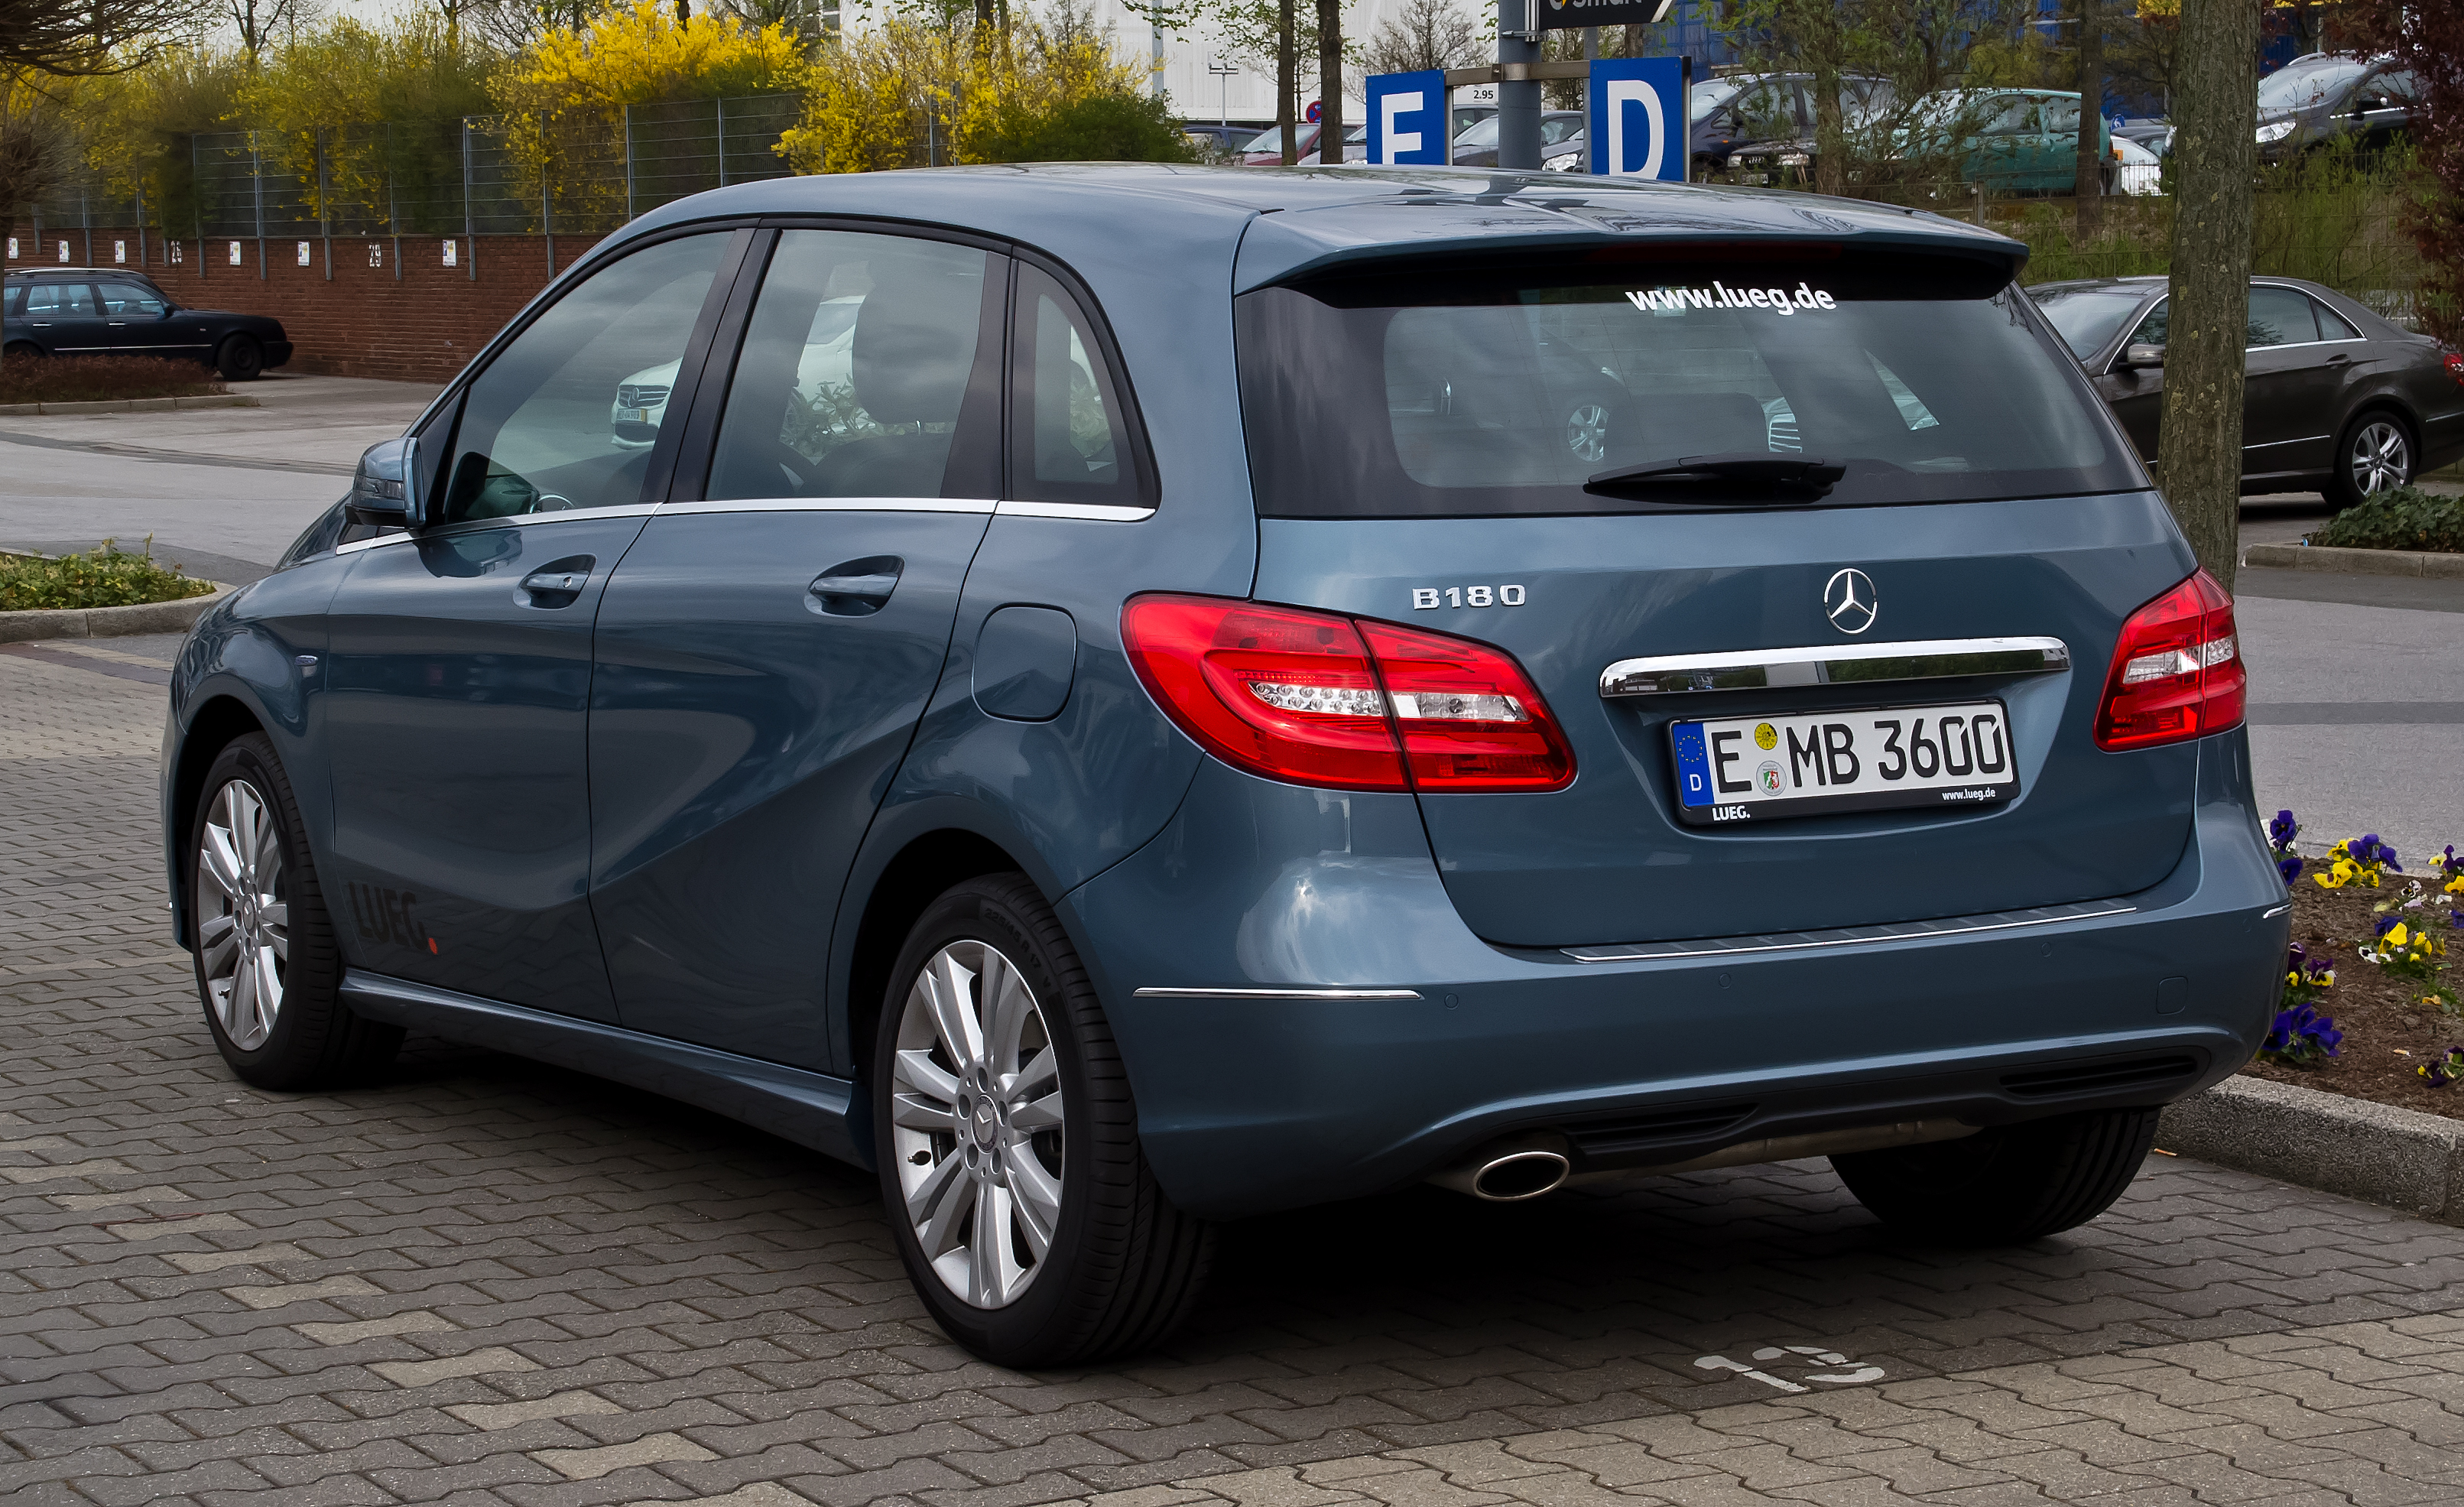 mercedes-benz a 180 blueefficiency-pic. 2